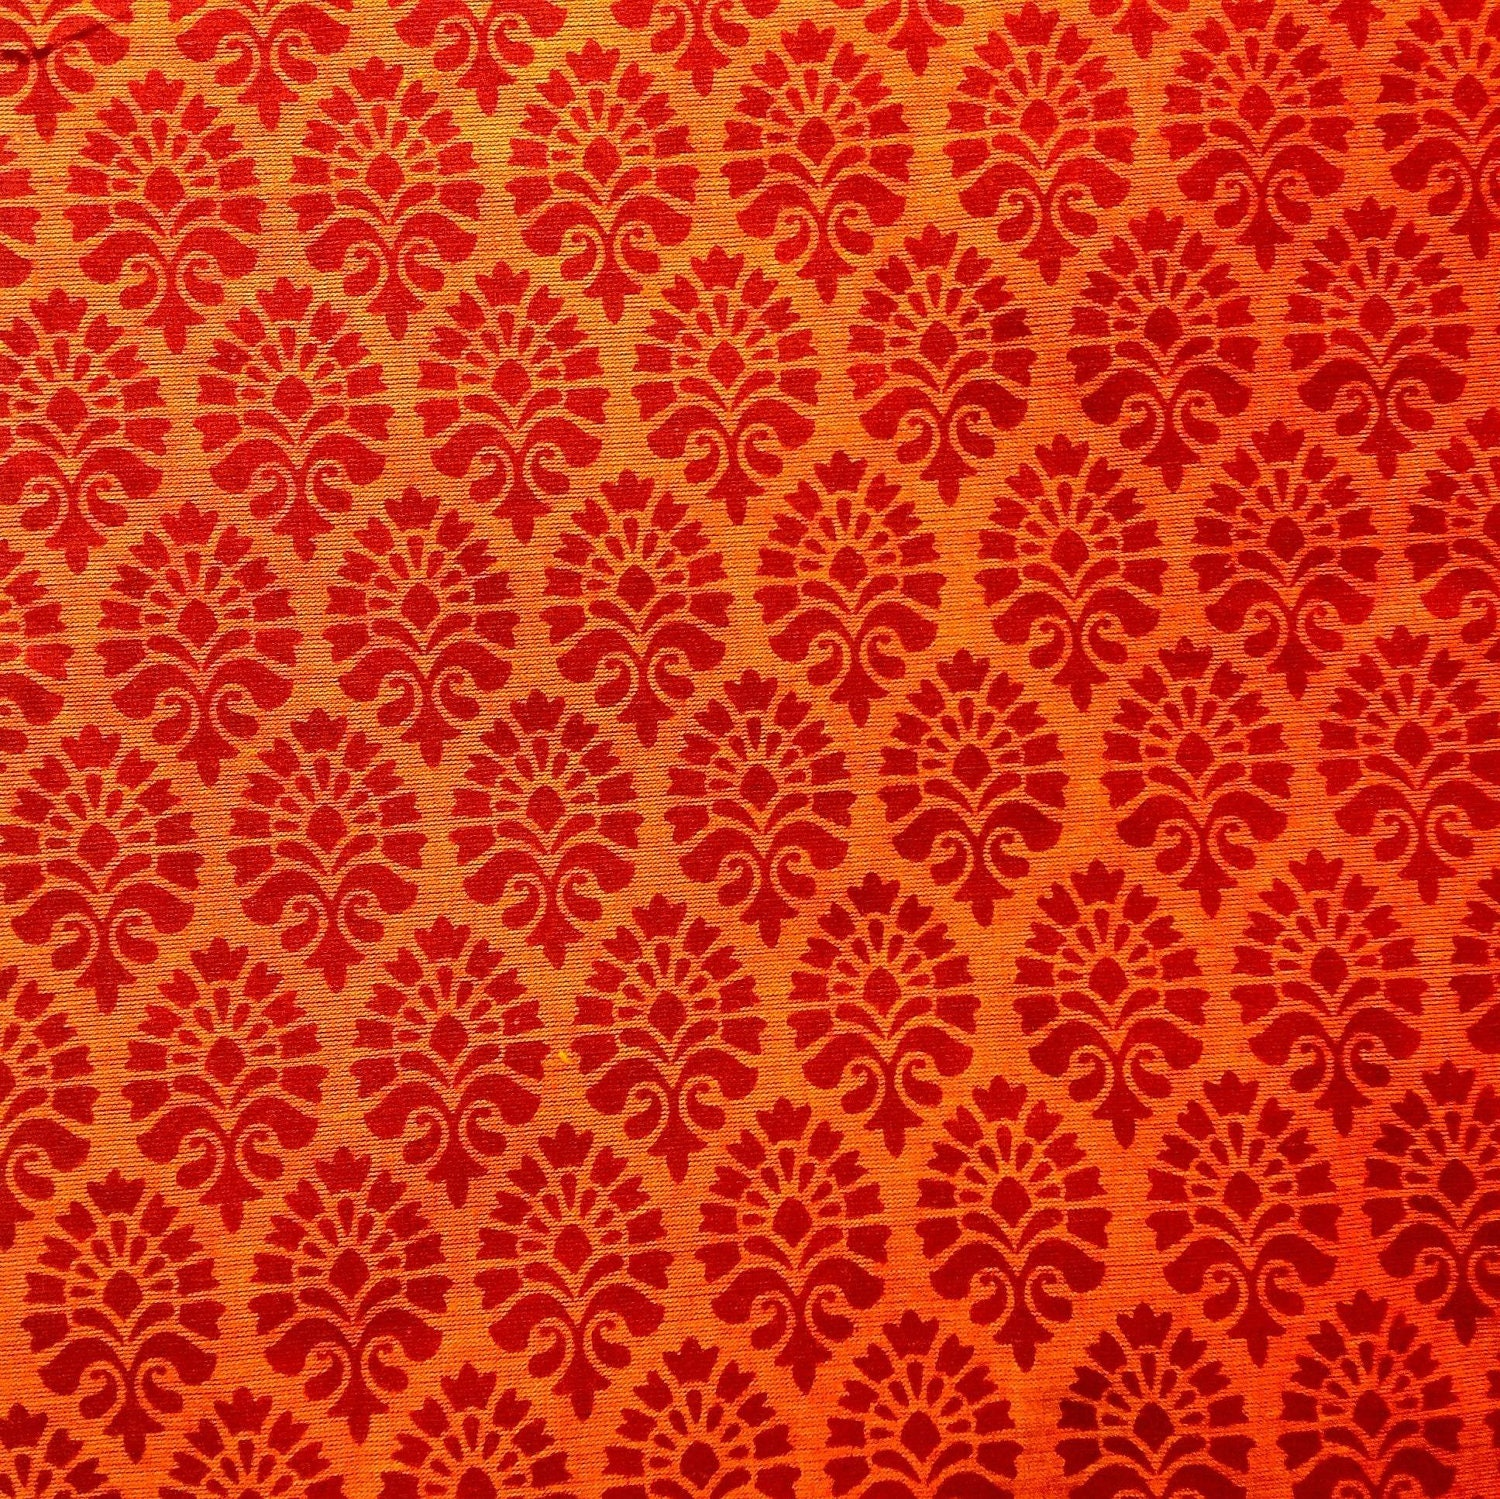 Cotton fabric indian fabric orange block print fabric for Fabric printing